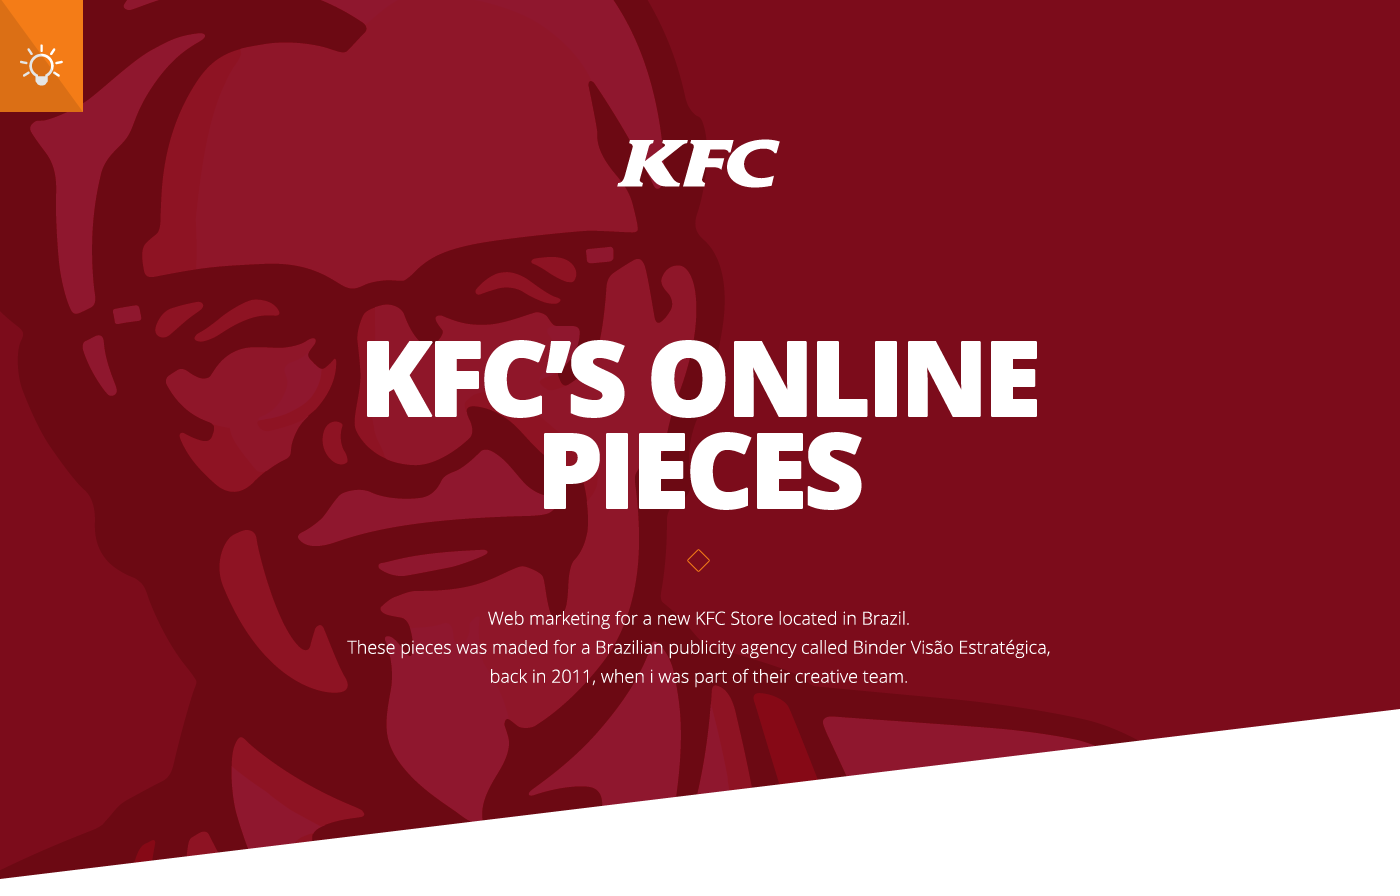 kfc marketing paper The paper will focus primarily on kfc's presence in china, comparing some of the differences in the decisions that were made for kfc in the marketing sector in the us as compared to the chinese market.